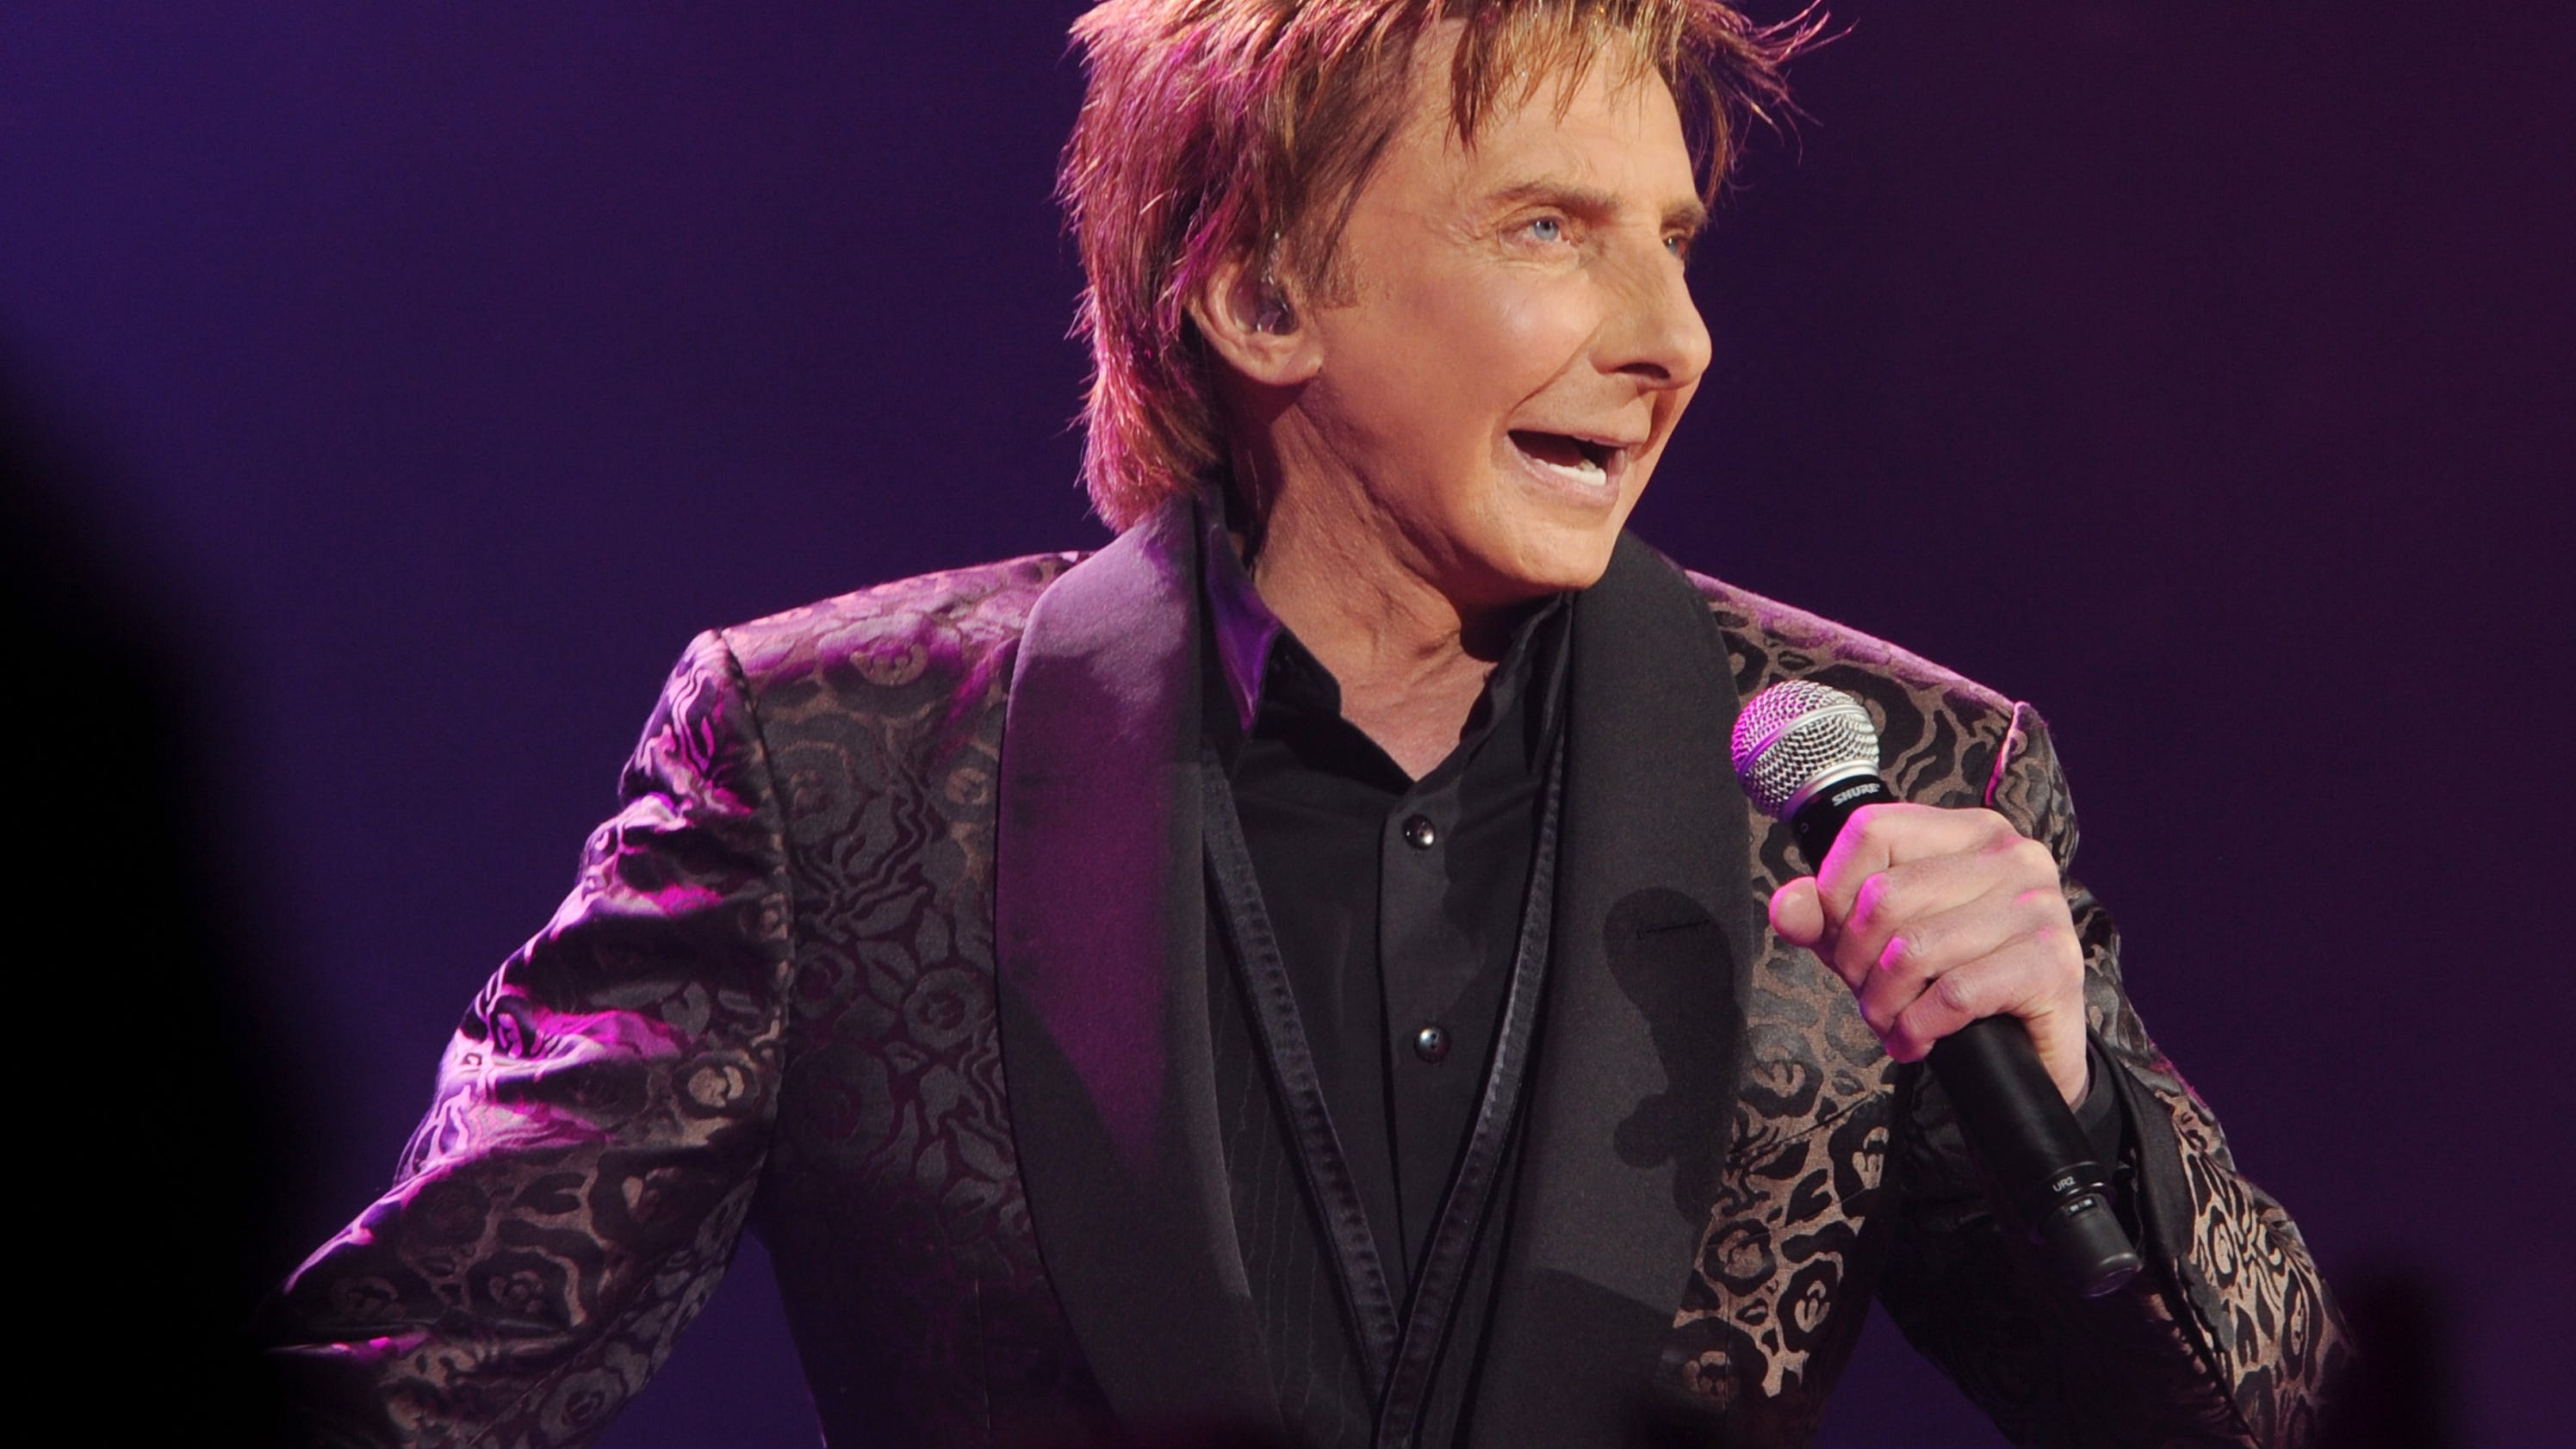 Barry manilow album could be a sleeper hit bookmarktalkfo Image collections